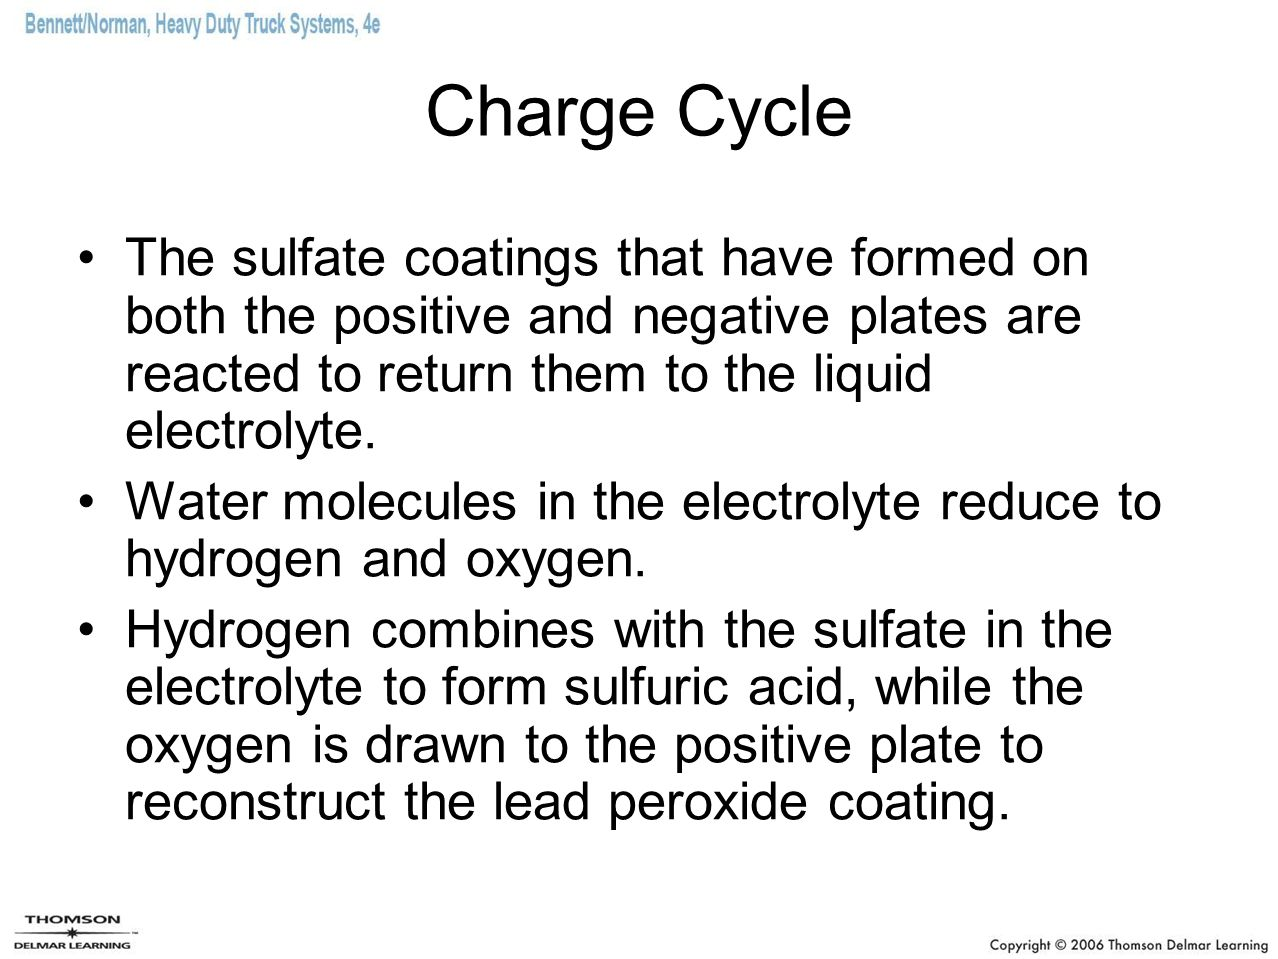 Charge Cycle The sulfate coatings that have formed on both the positive and negative plates are reacted to return them to the liquid electrolyte.